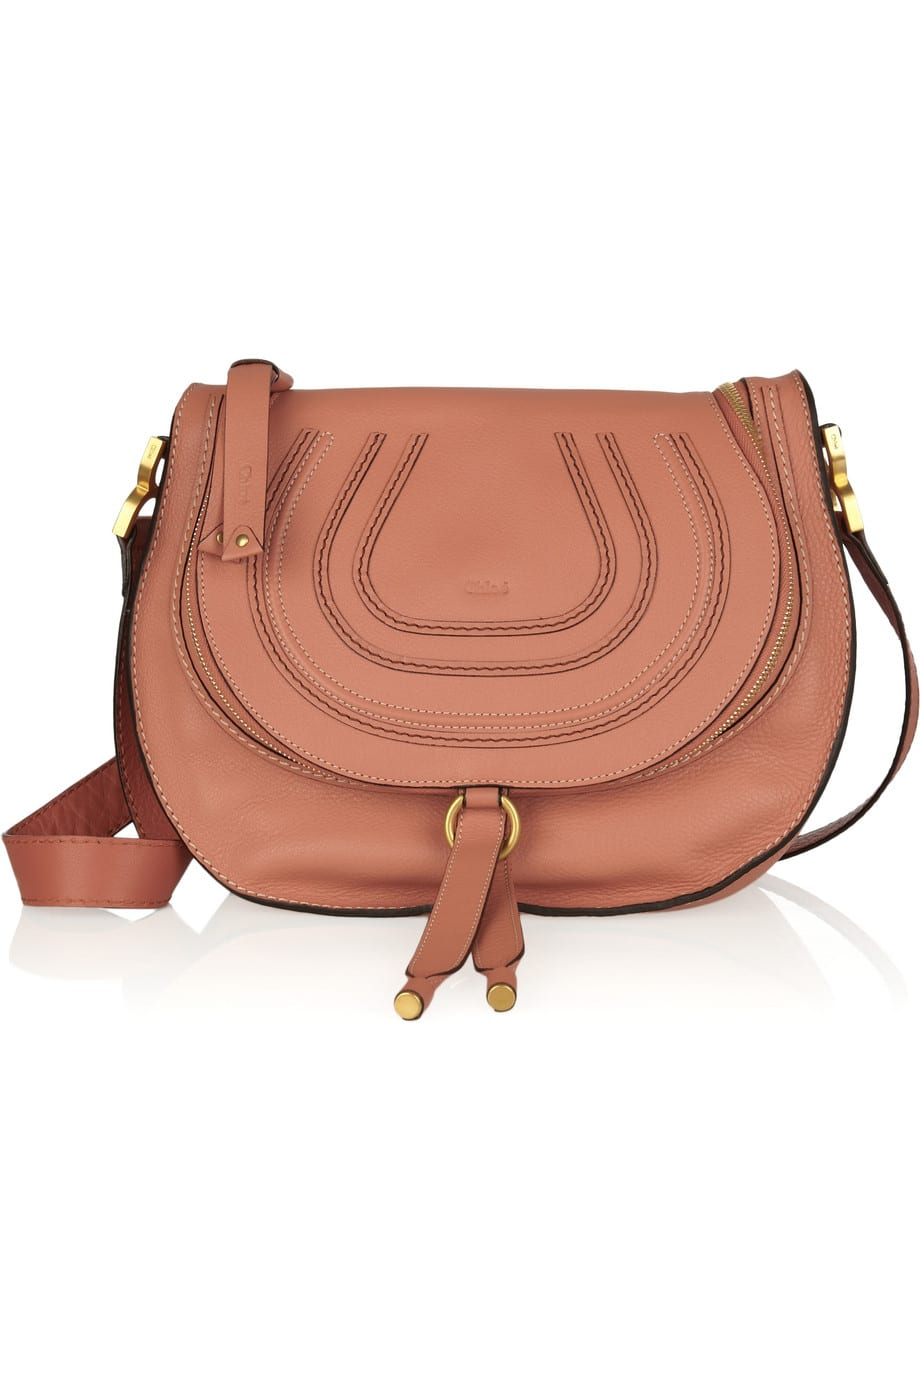 defcda318 Chloe Marcie Bag Reference Guide | Spotted Fashion